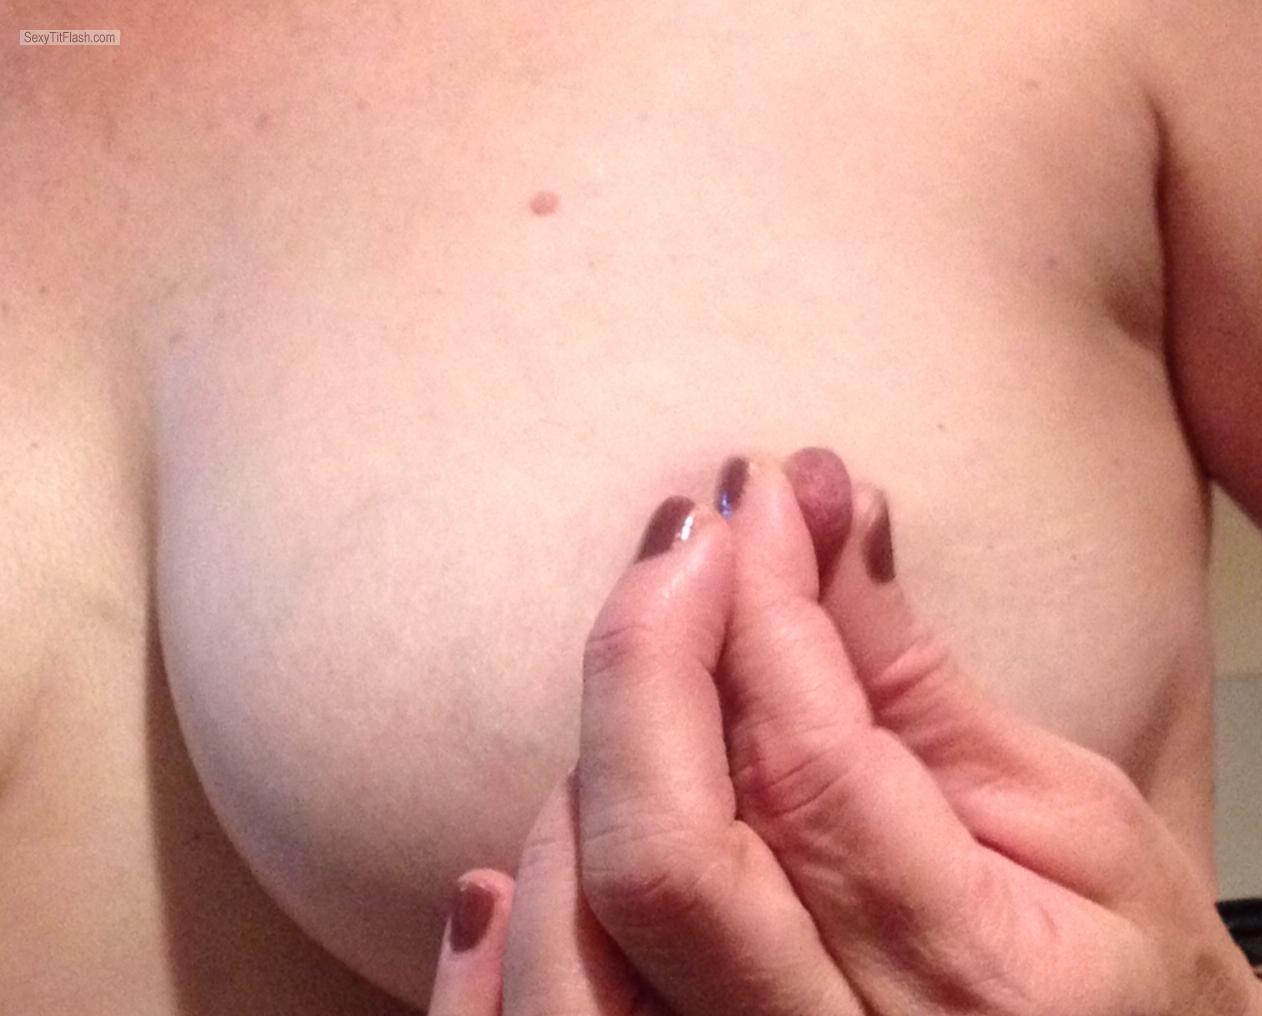 Tit Flash: My Big Tits - Topless Reelnice from United Kingdom